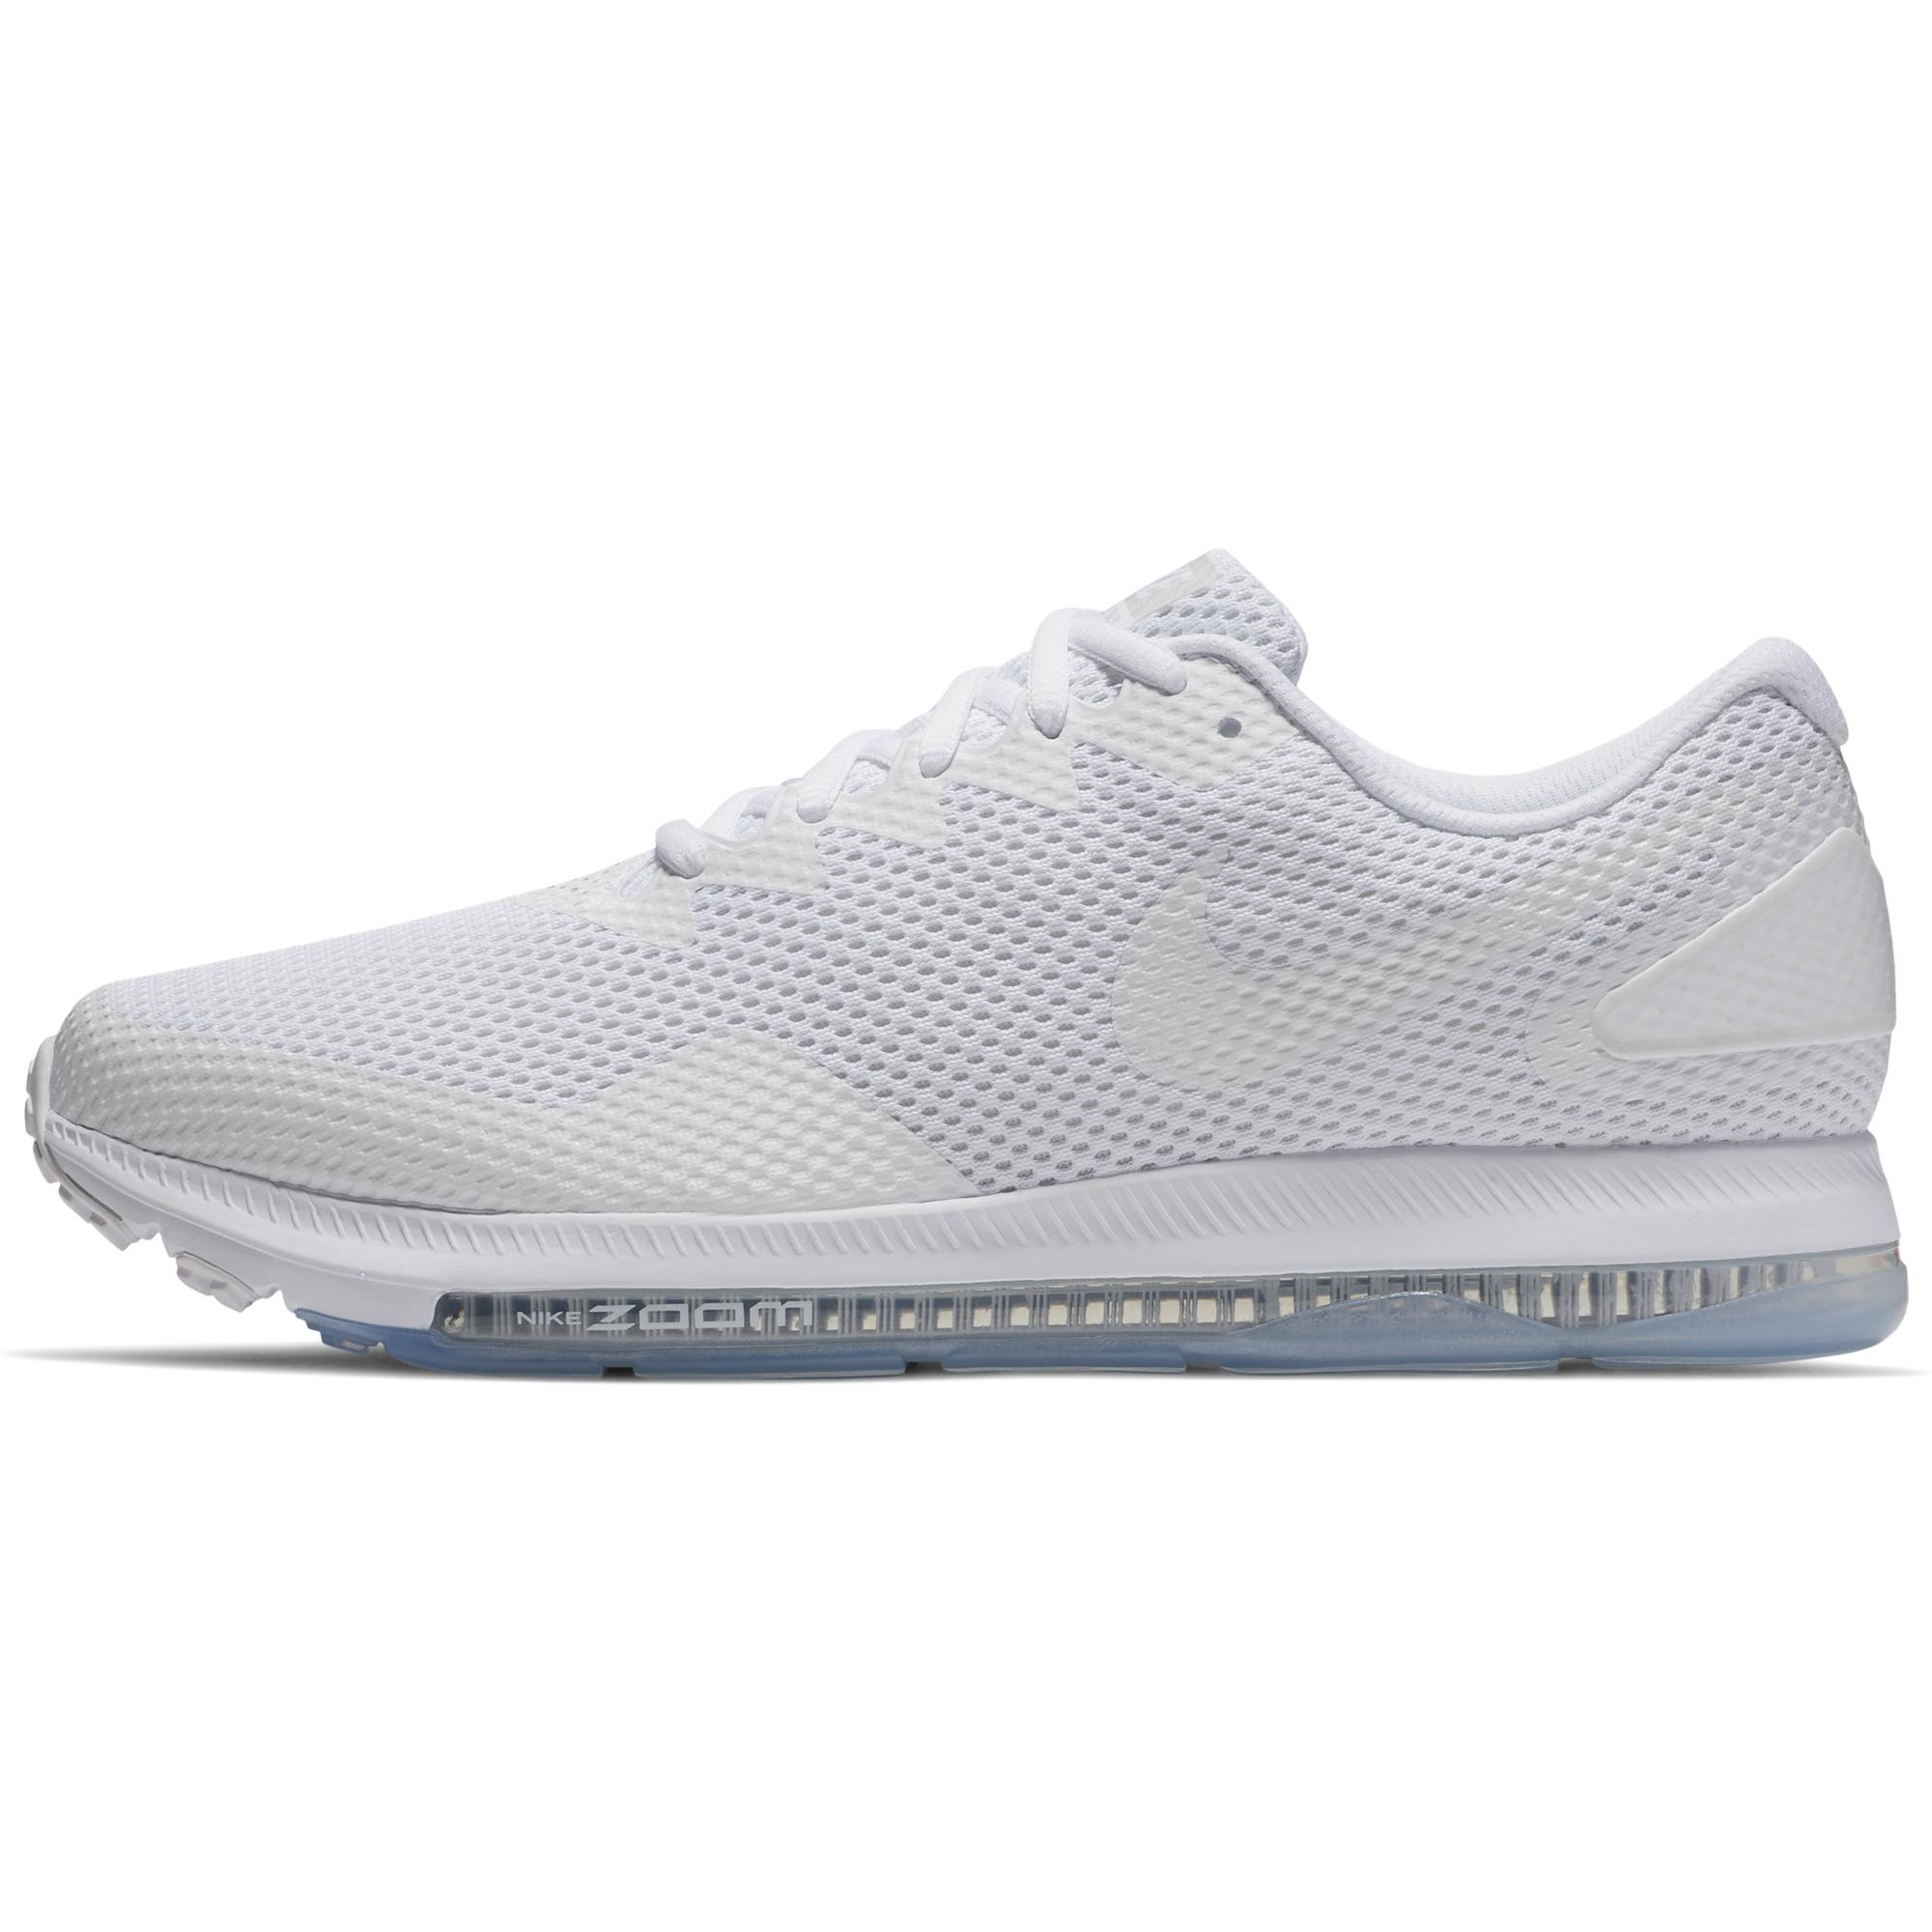 2ad7b772f7d08 Nike Shoes Zoom All Out Low 2 White white-off White - Tifoshop.com